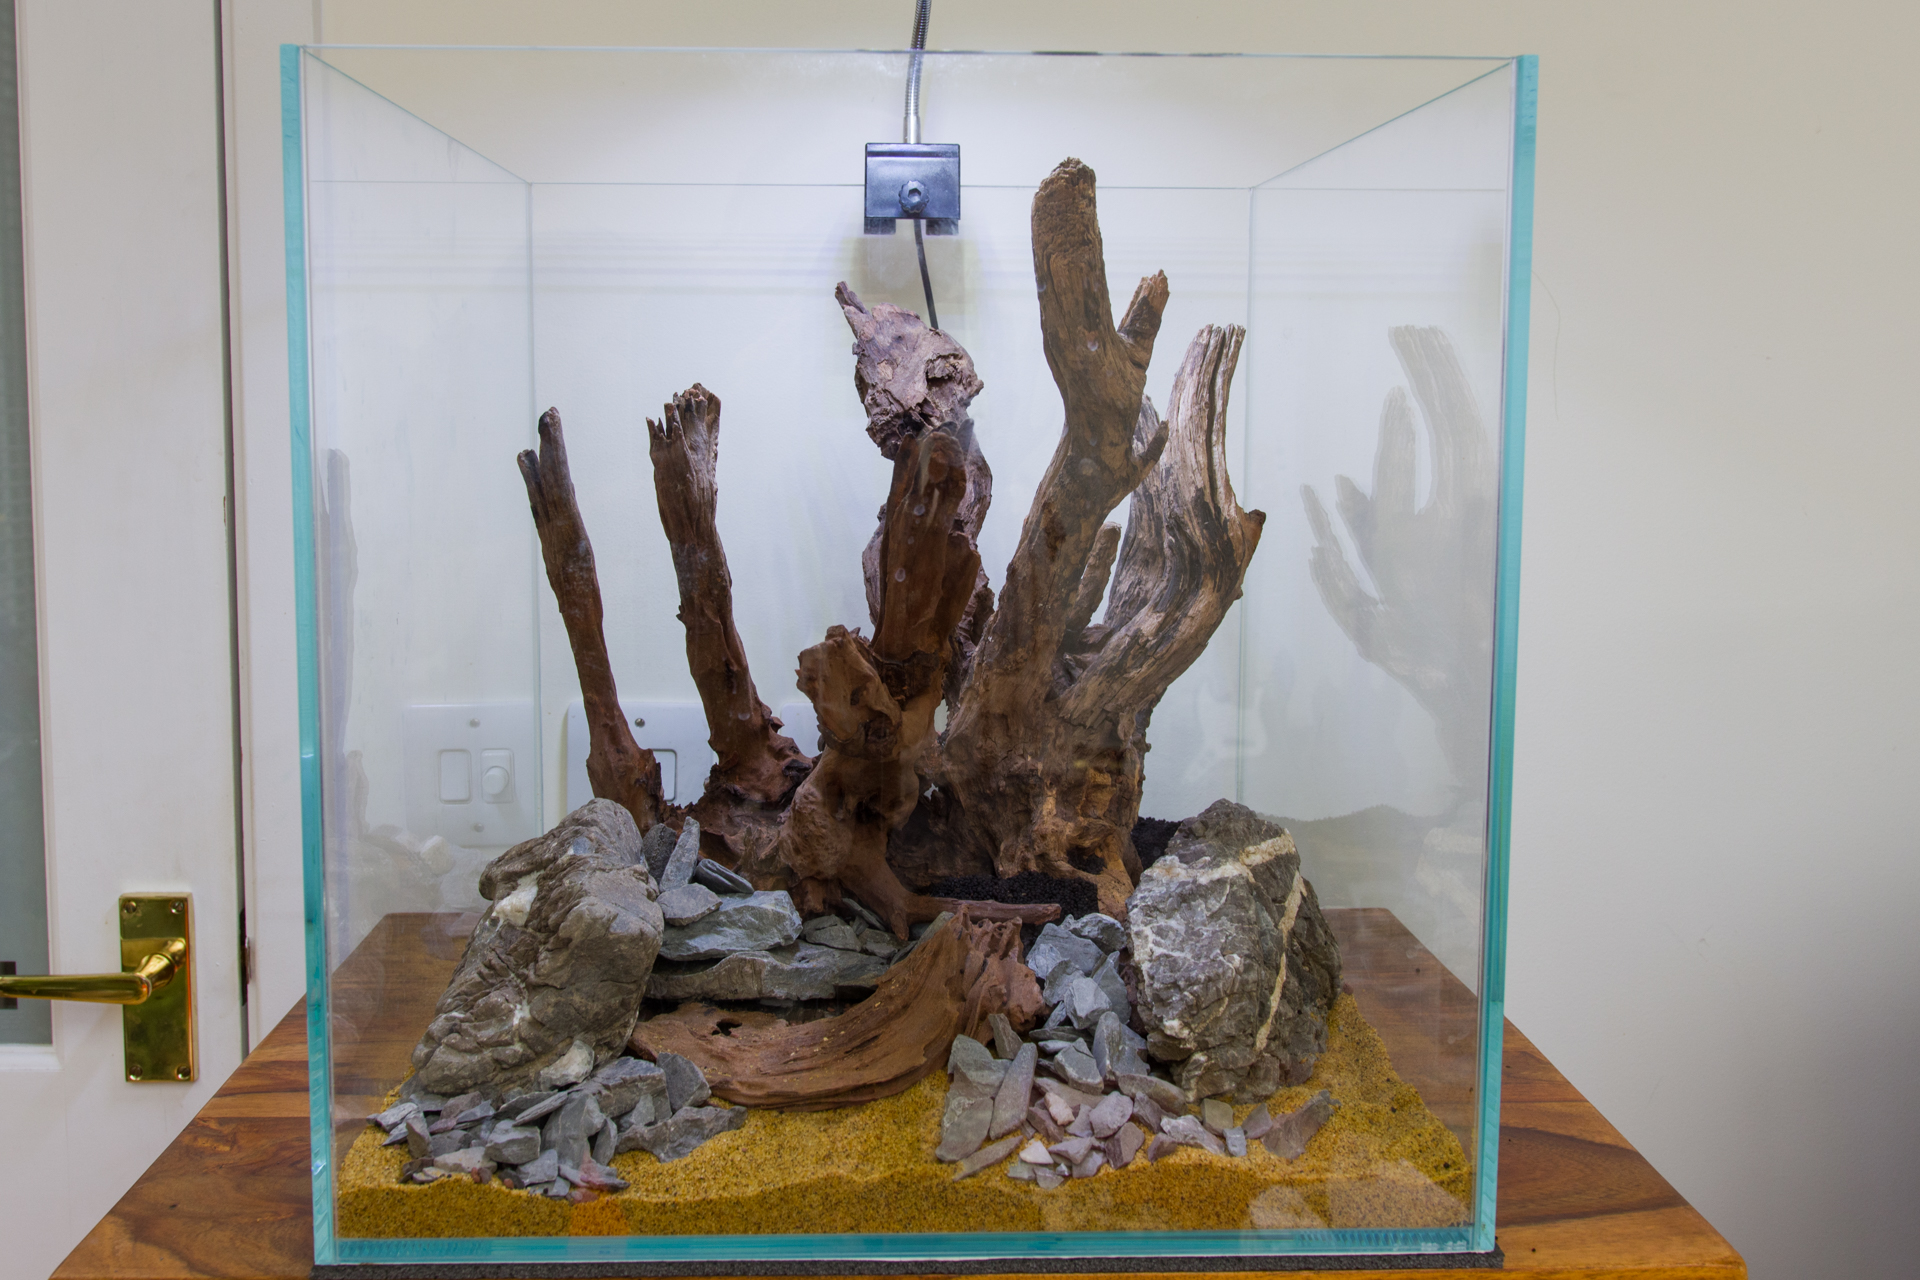 7880 - 03-May- hardscape end day 2 FTS.jpg